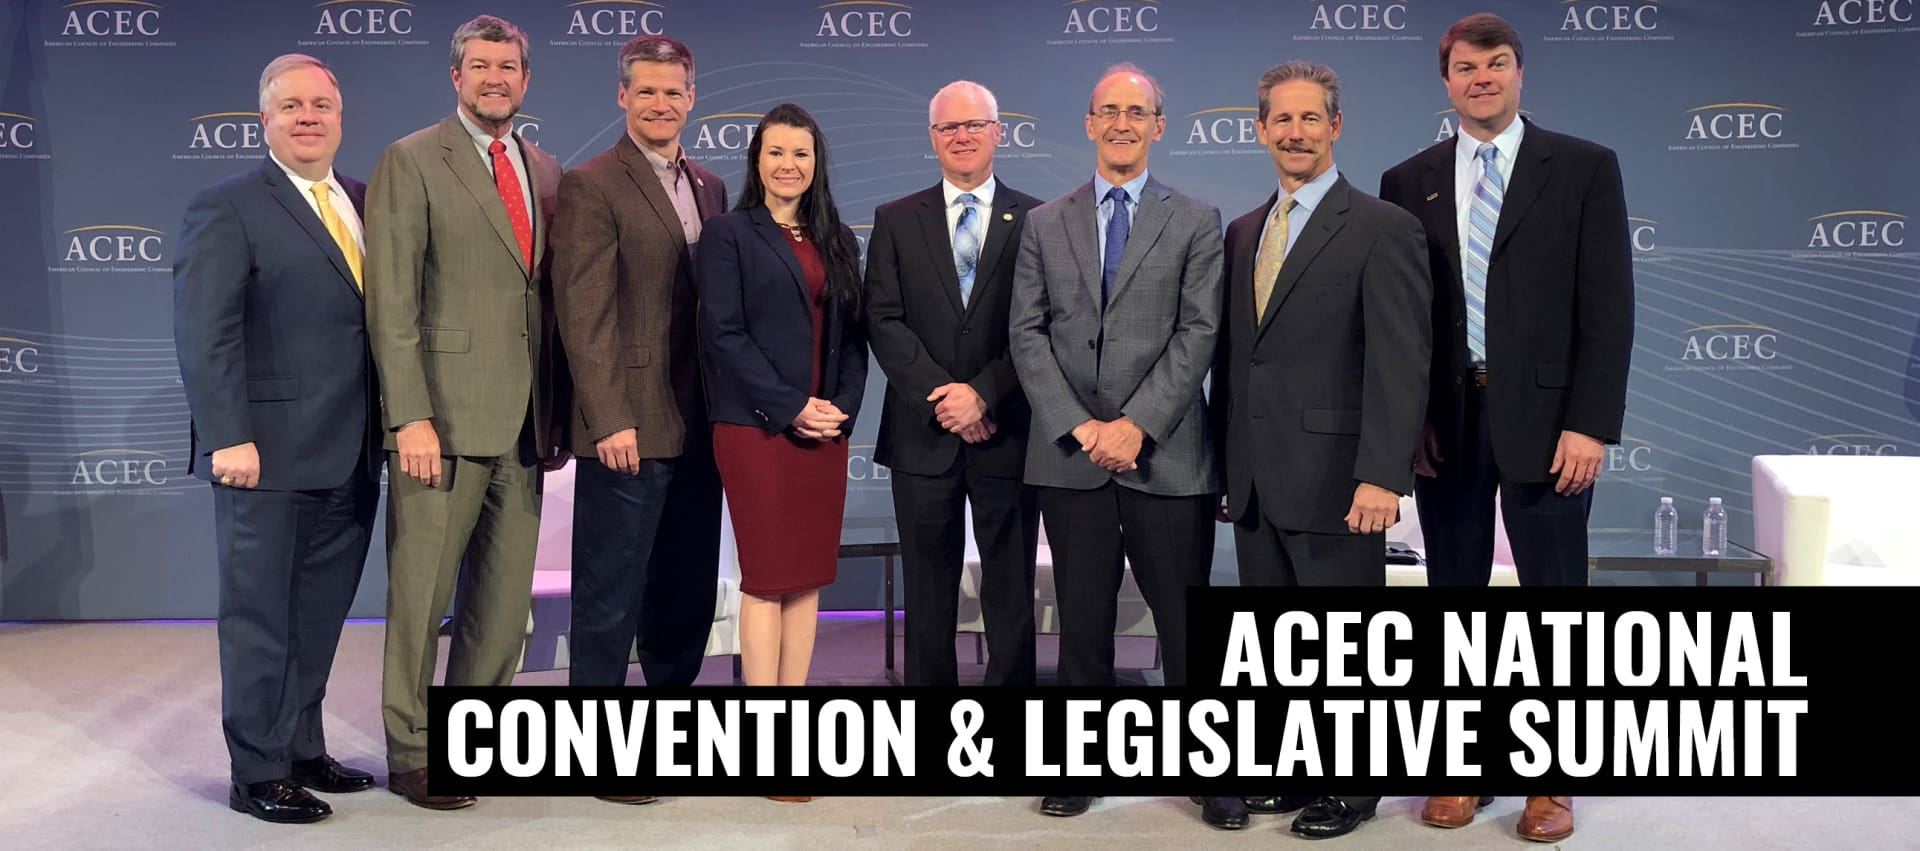 ACEC National Convention and Legislative Summit